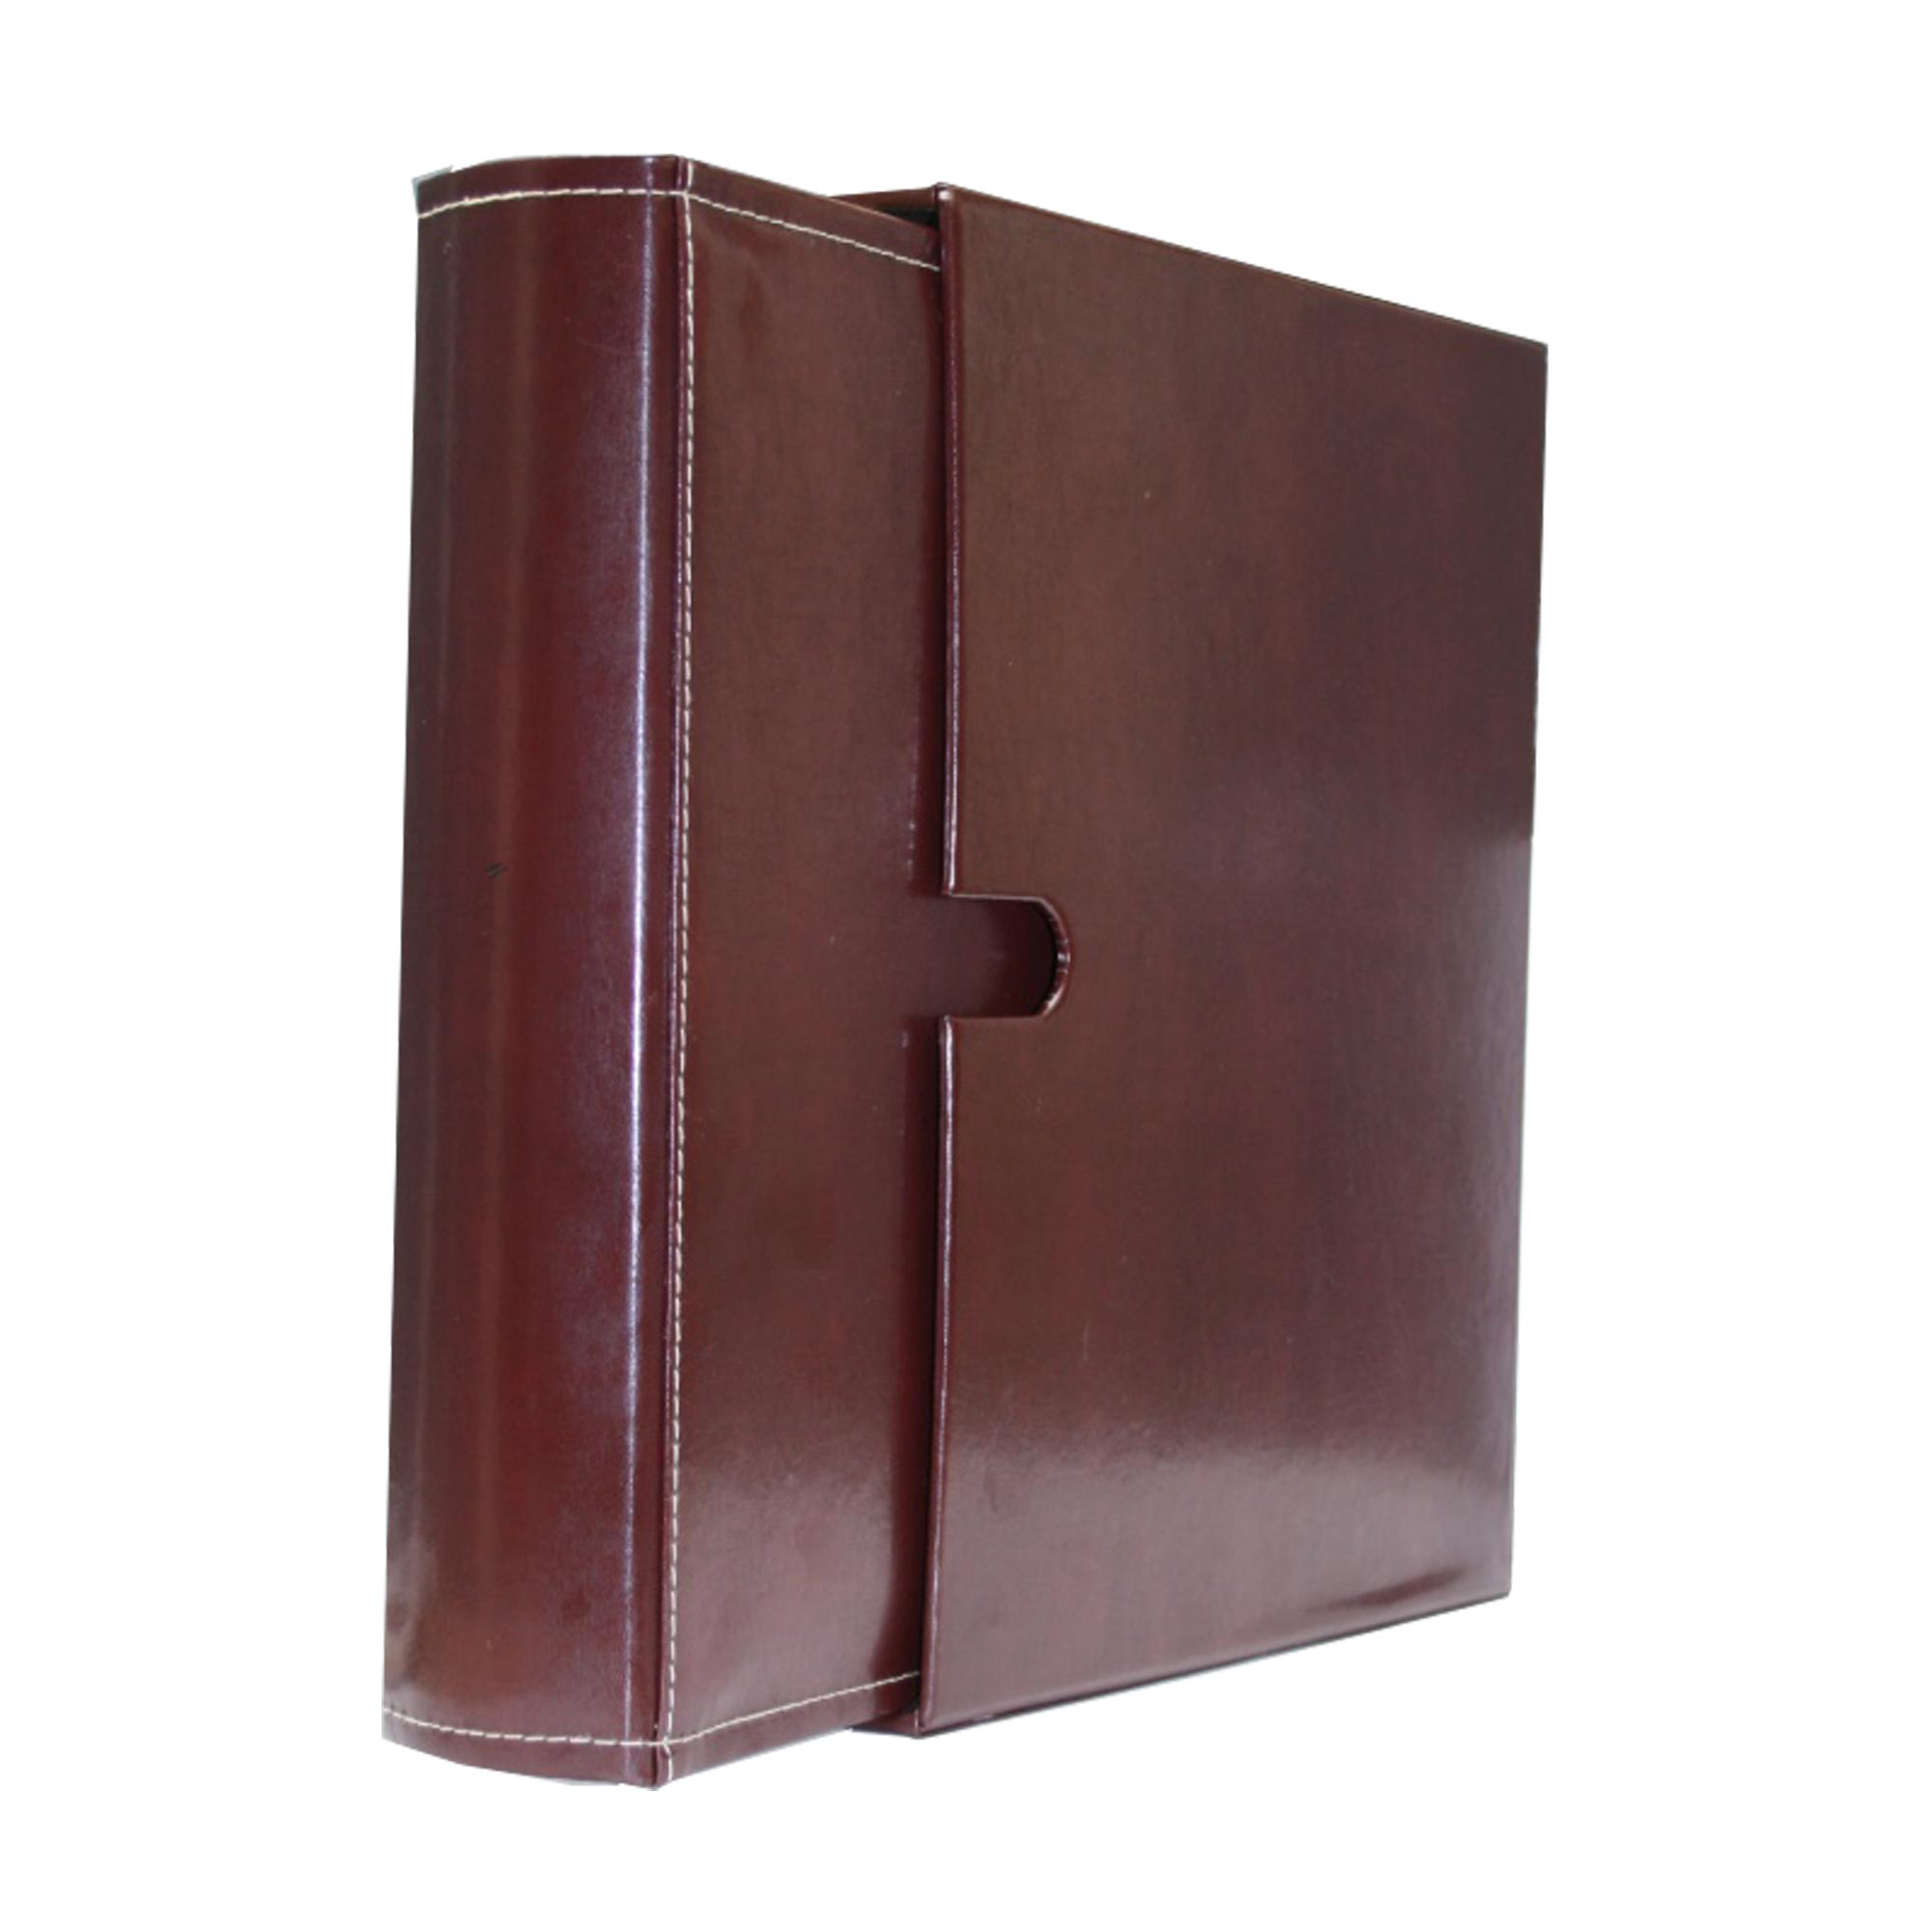 Deluxe Leather Burgundy 4 Ring Binder Album Set